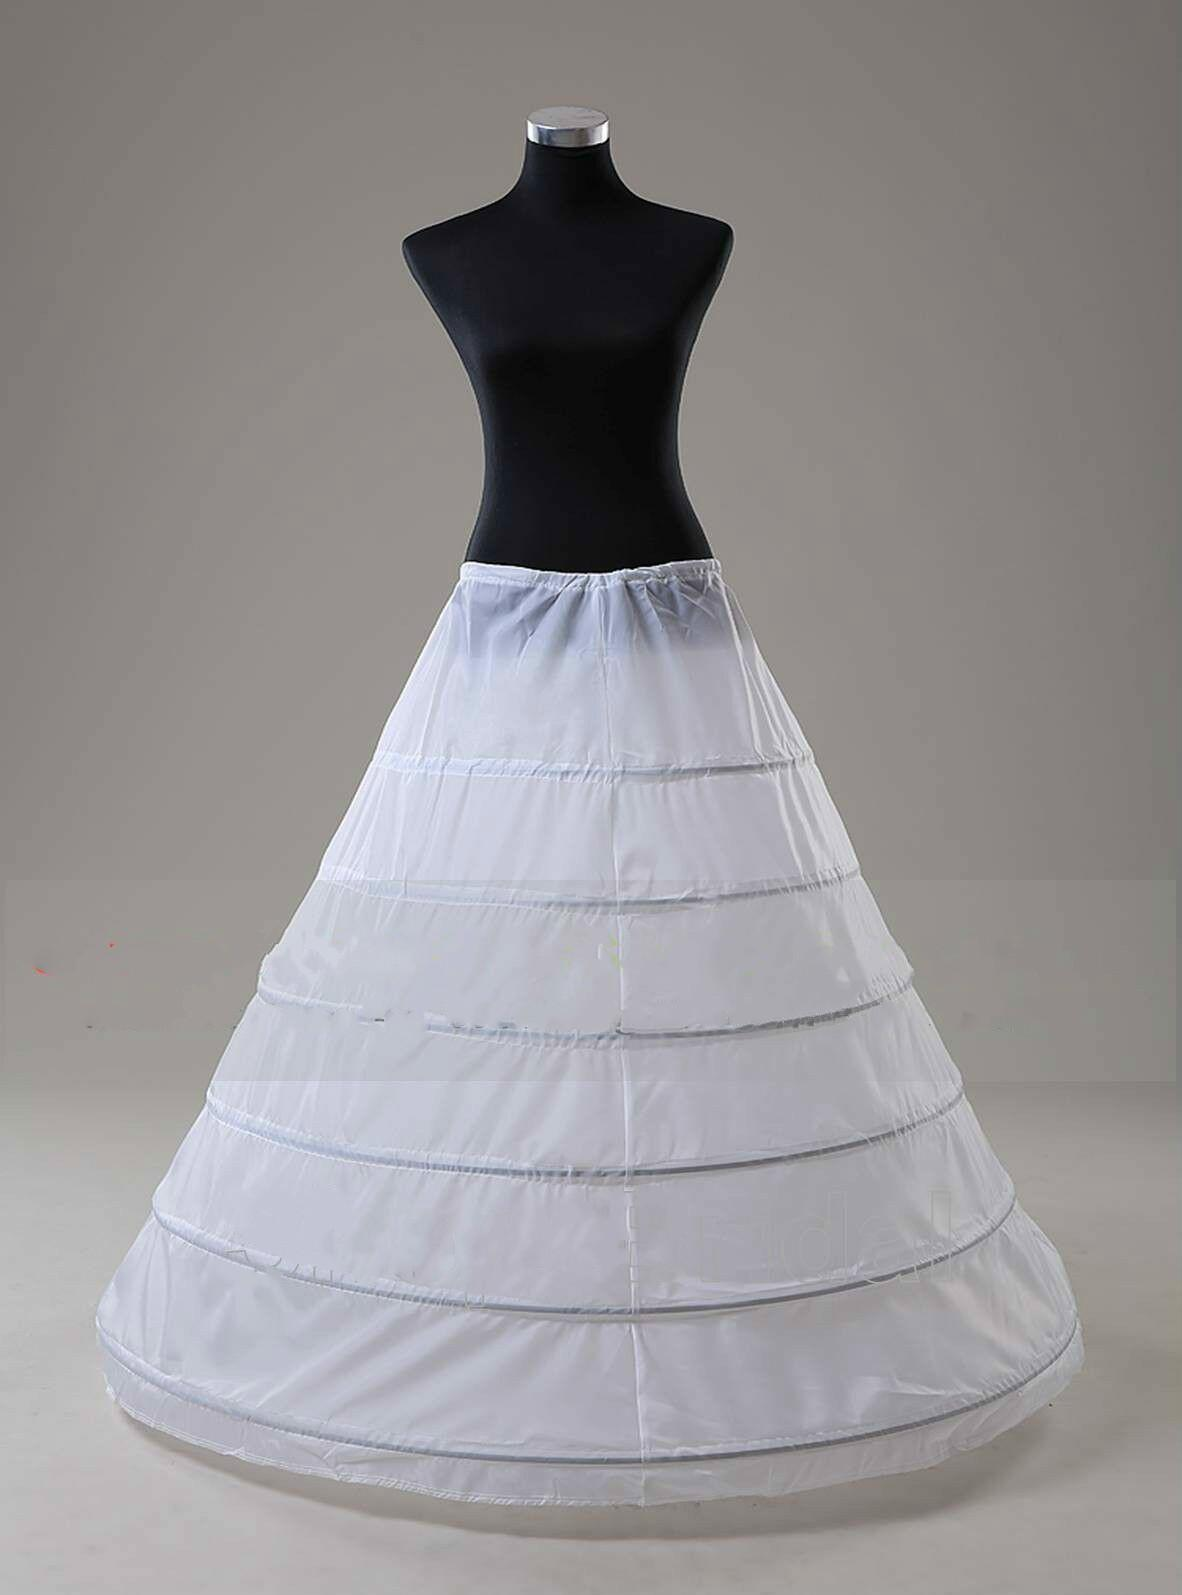 White 6 HOOP A Line Bridal Ball Gown Dress Silps Crinoline Petticoat Underskirt